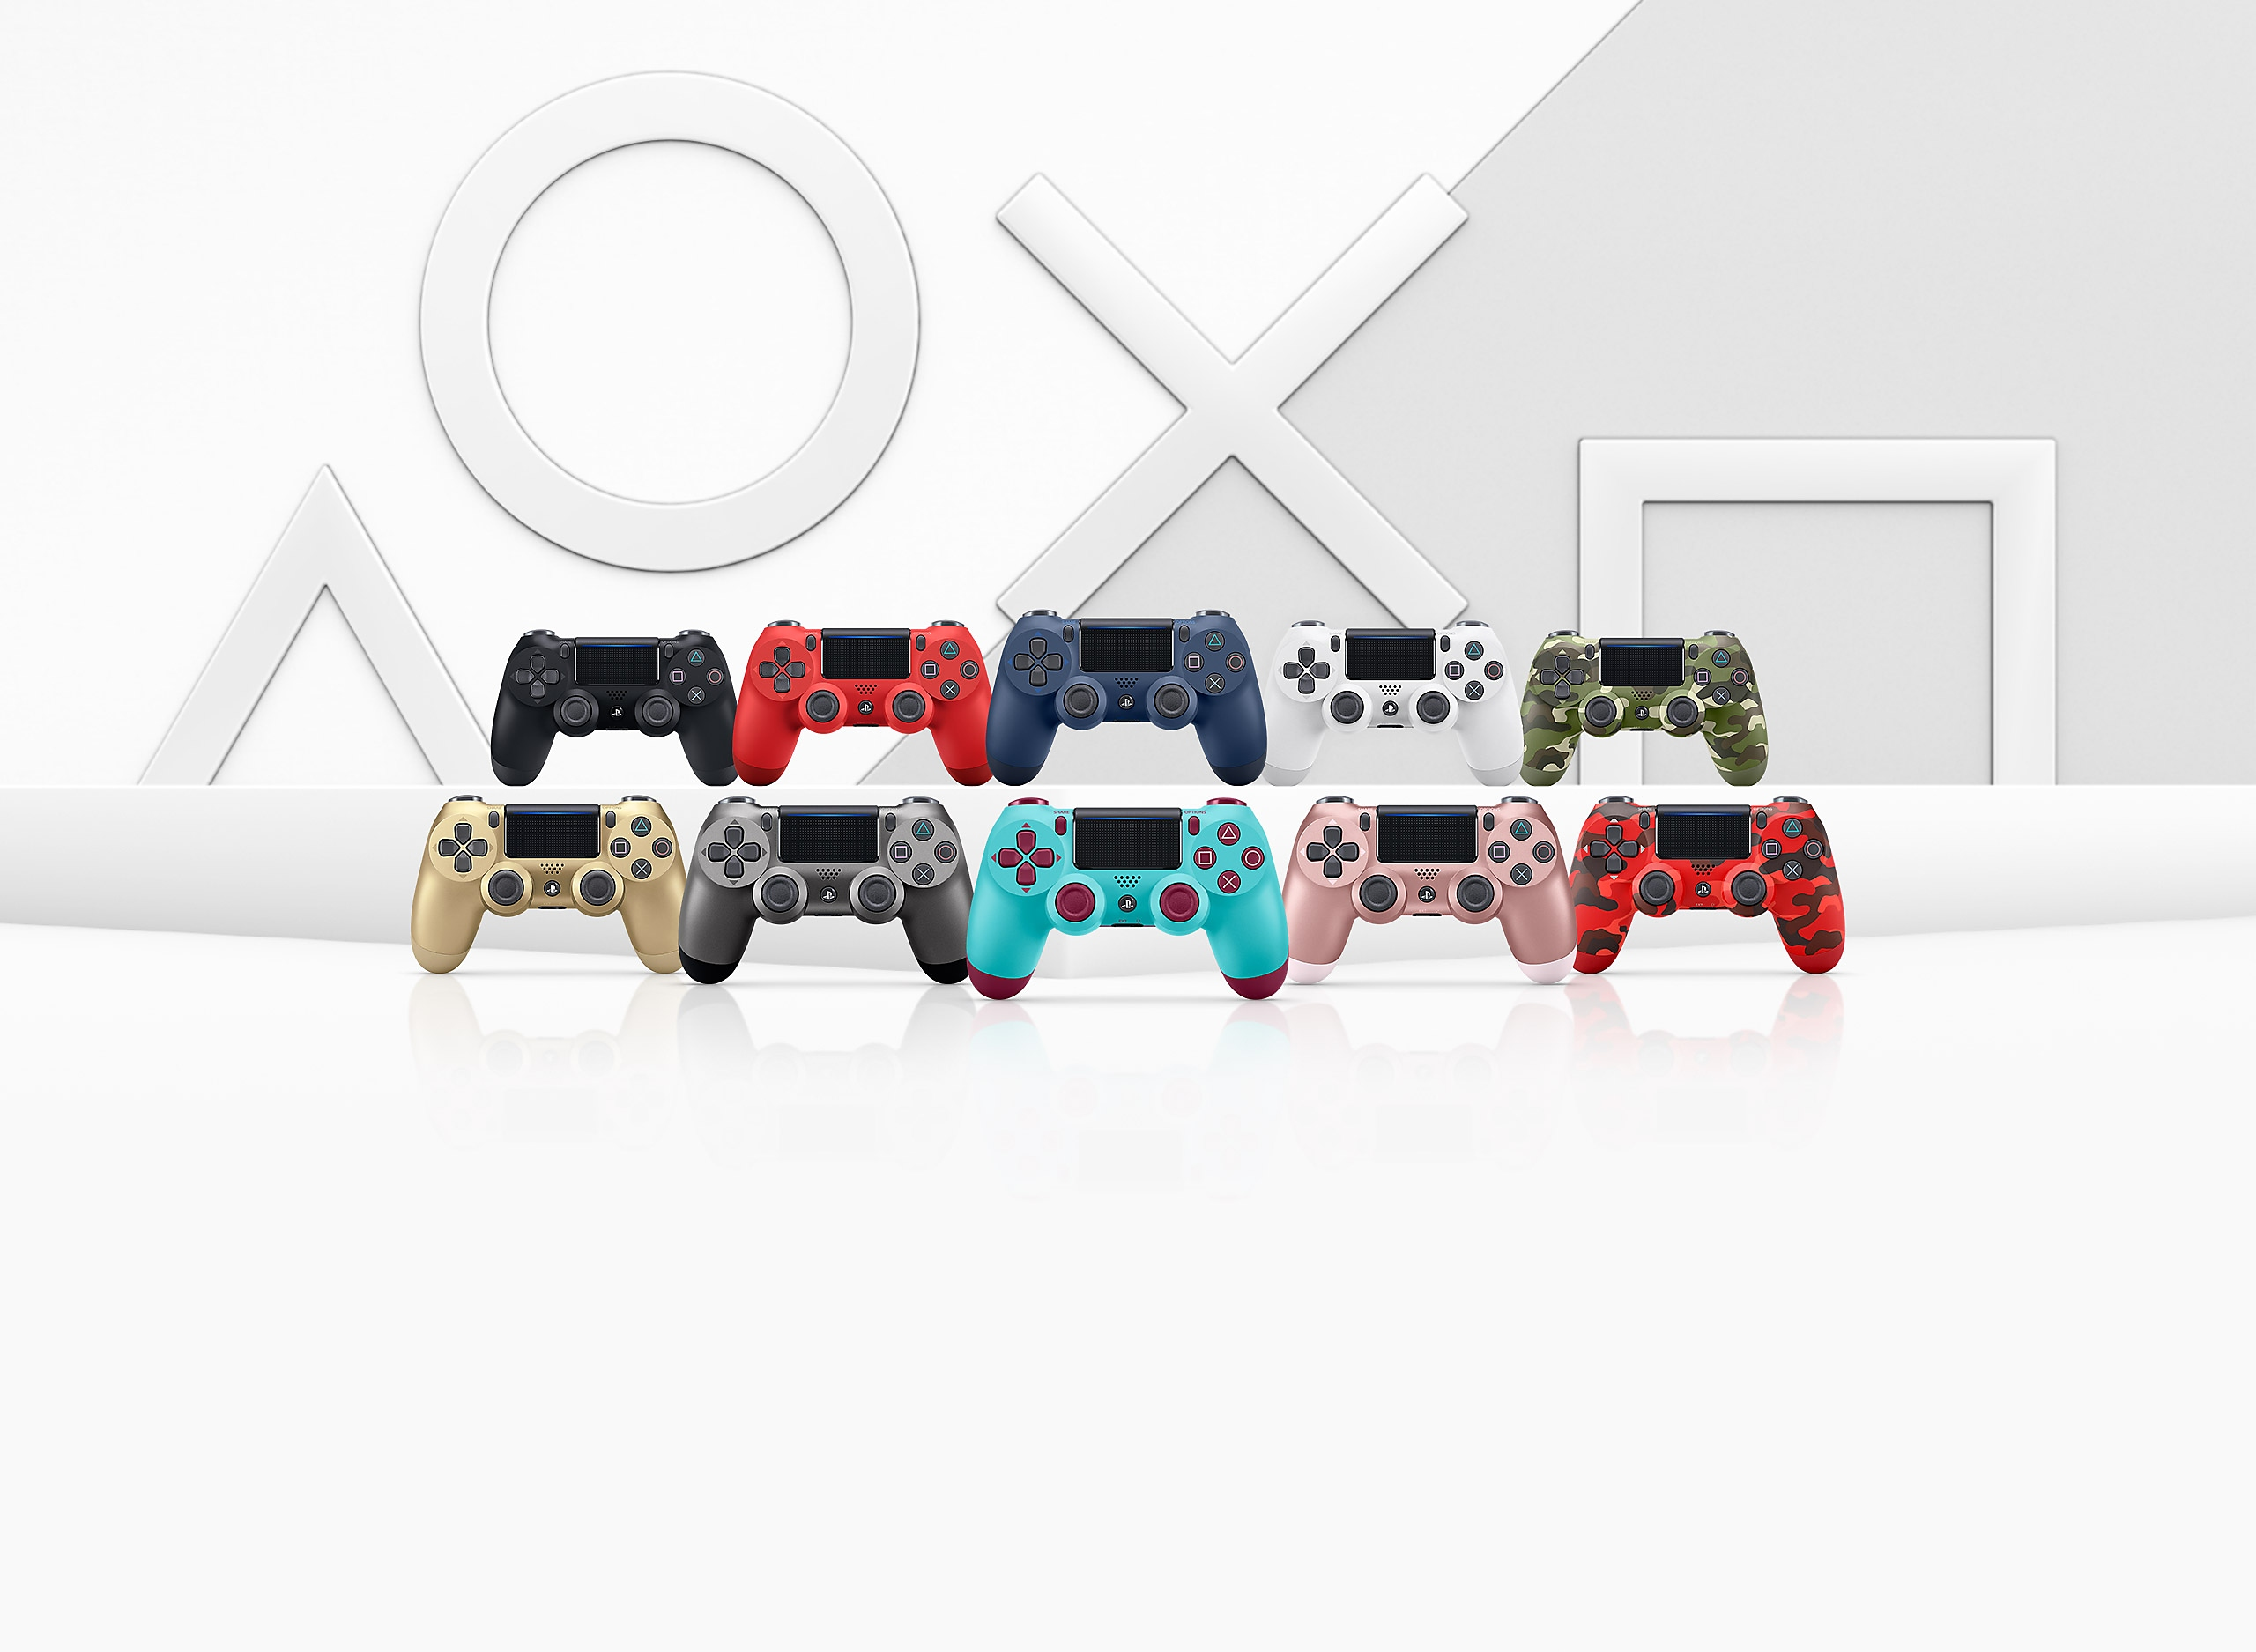 DS4 controllers